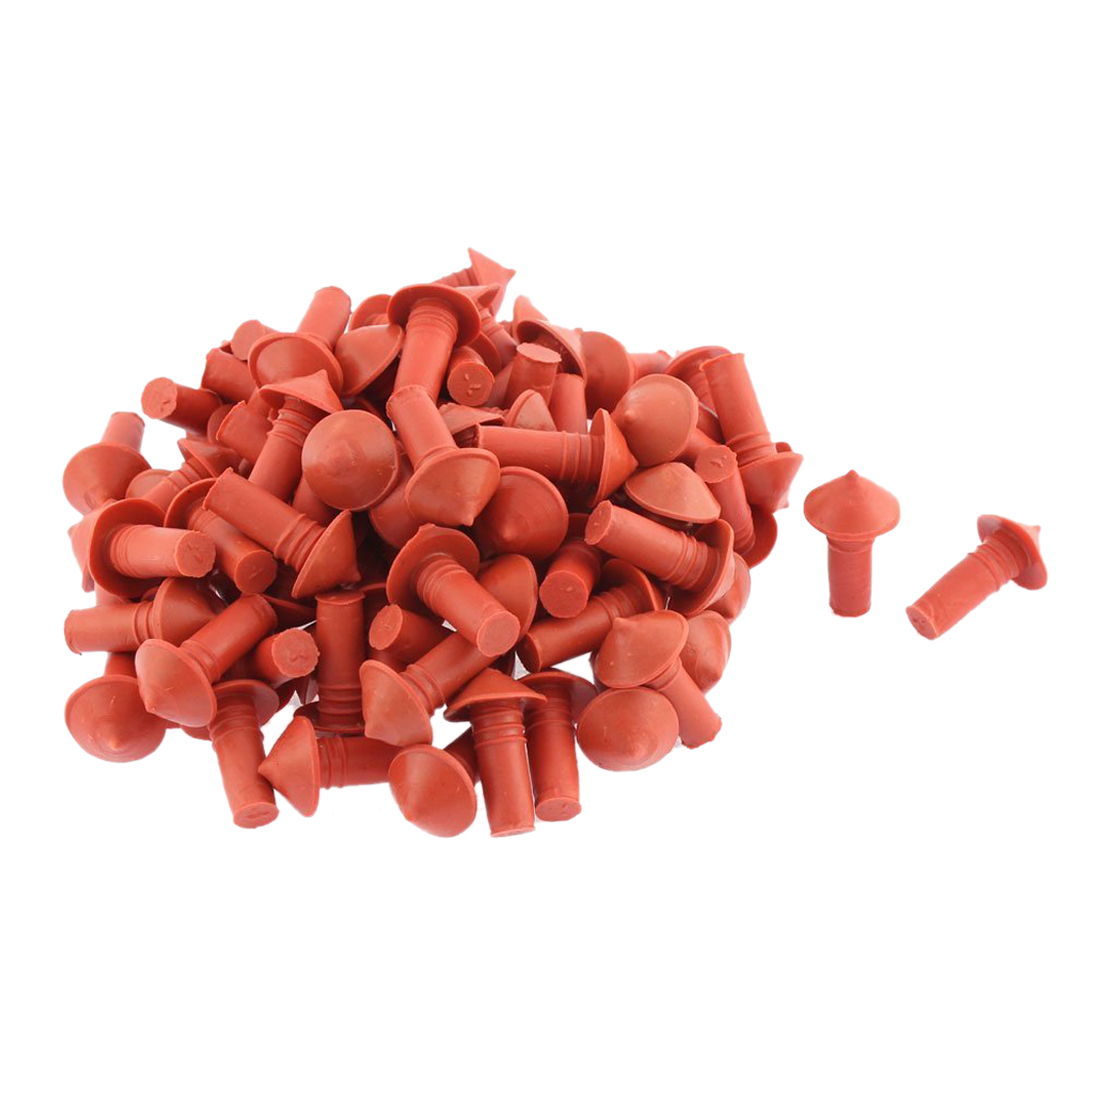 100Pcs Mushroom Style Tire Repair Insert Plugs 7mm